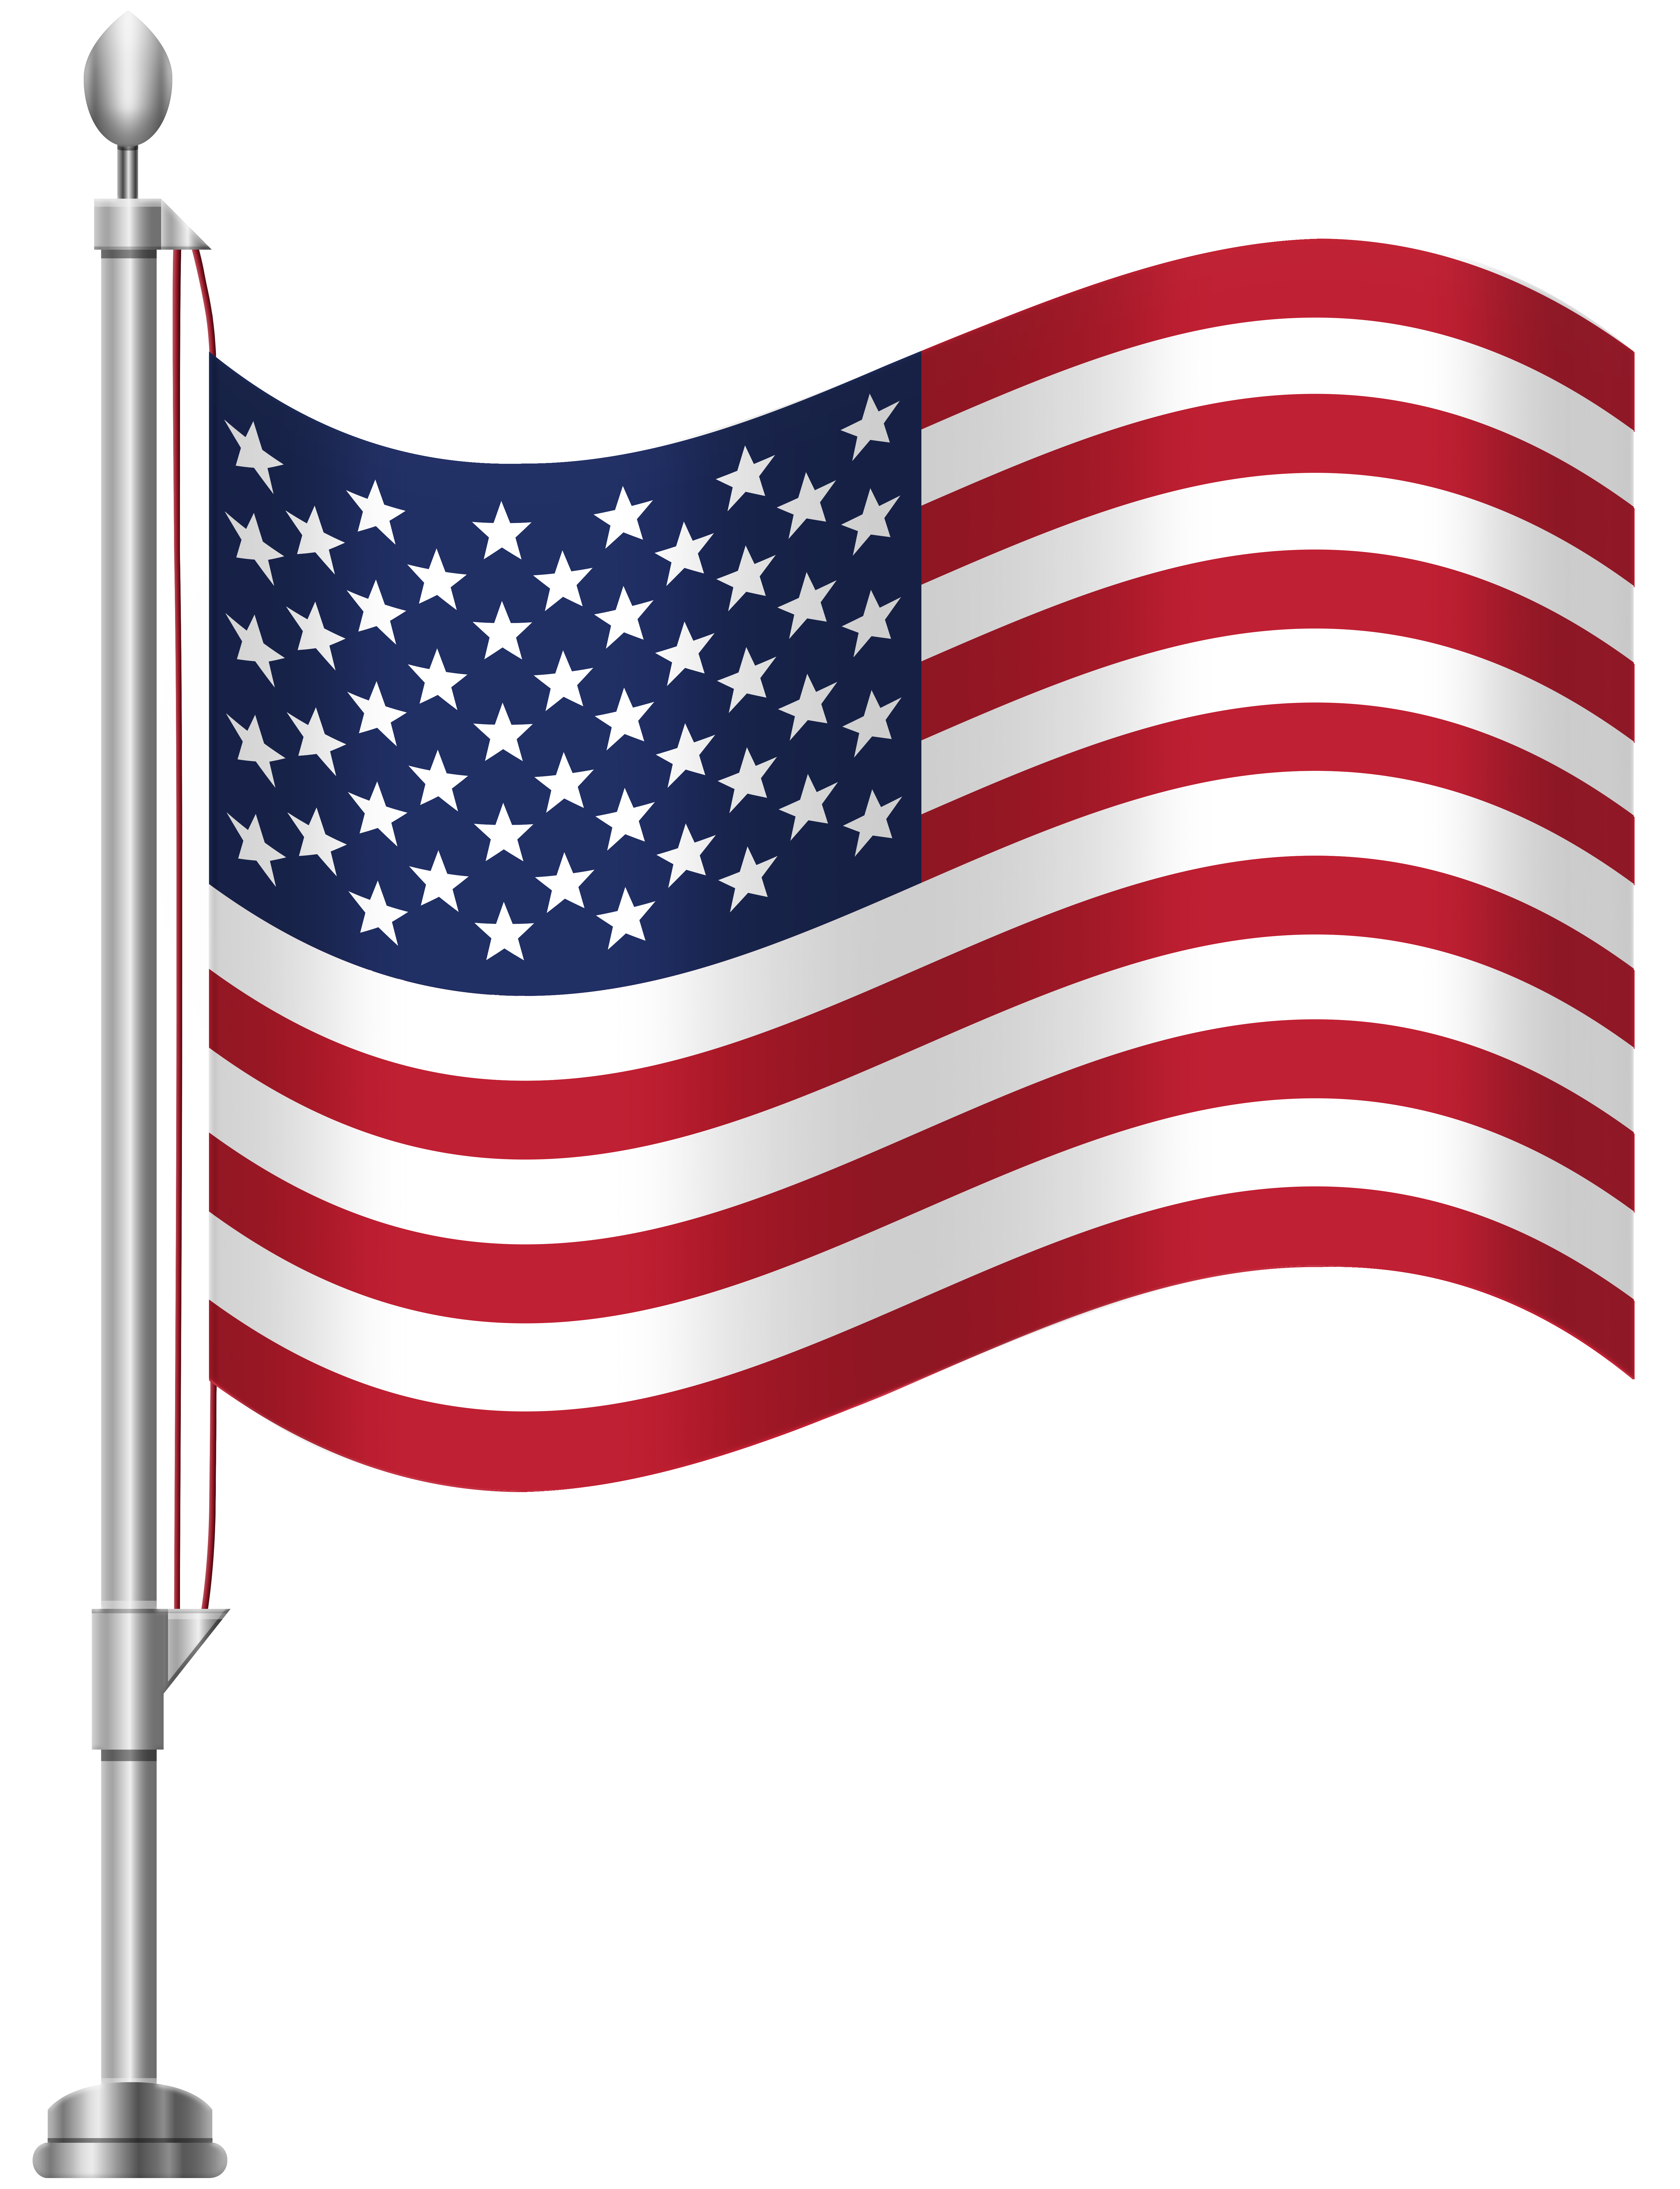 America clipart. United states of flag